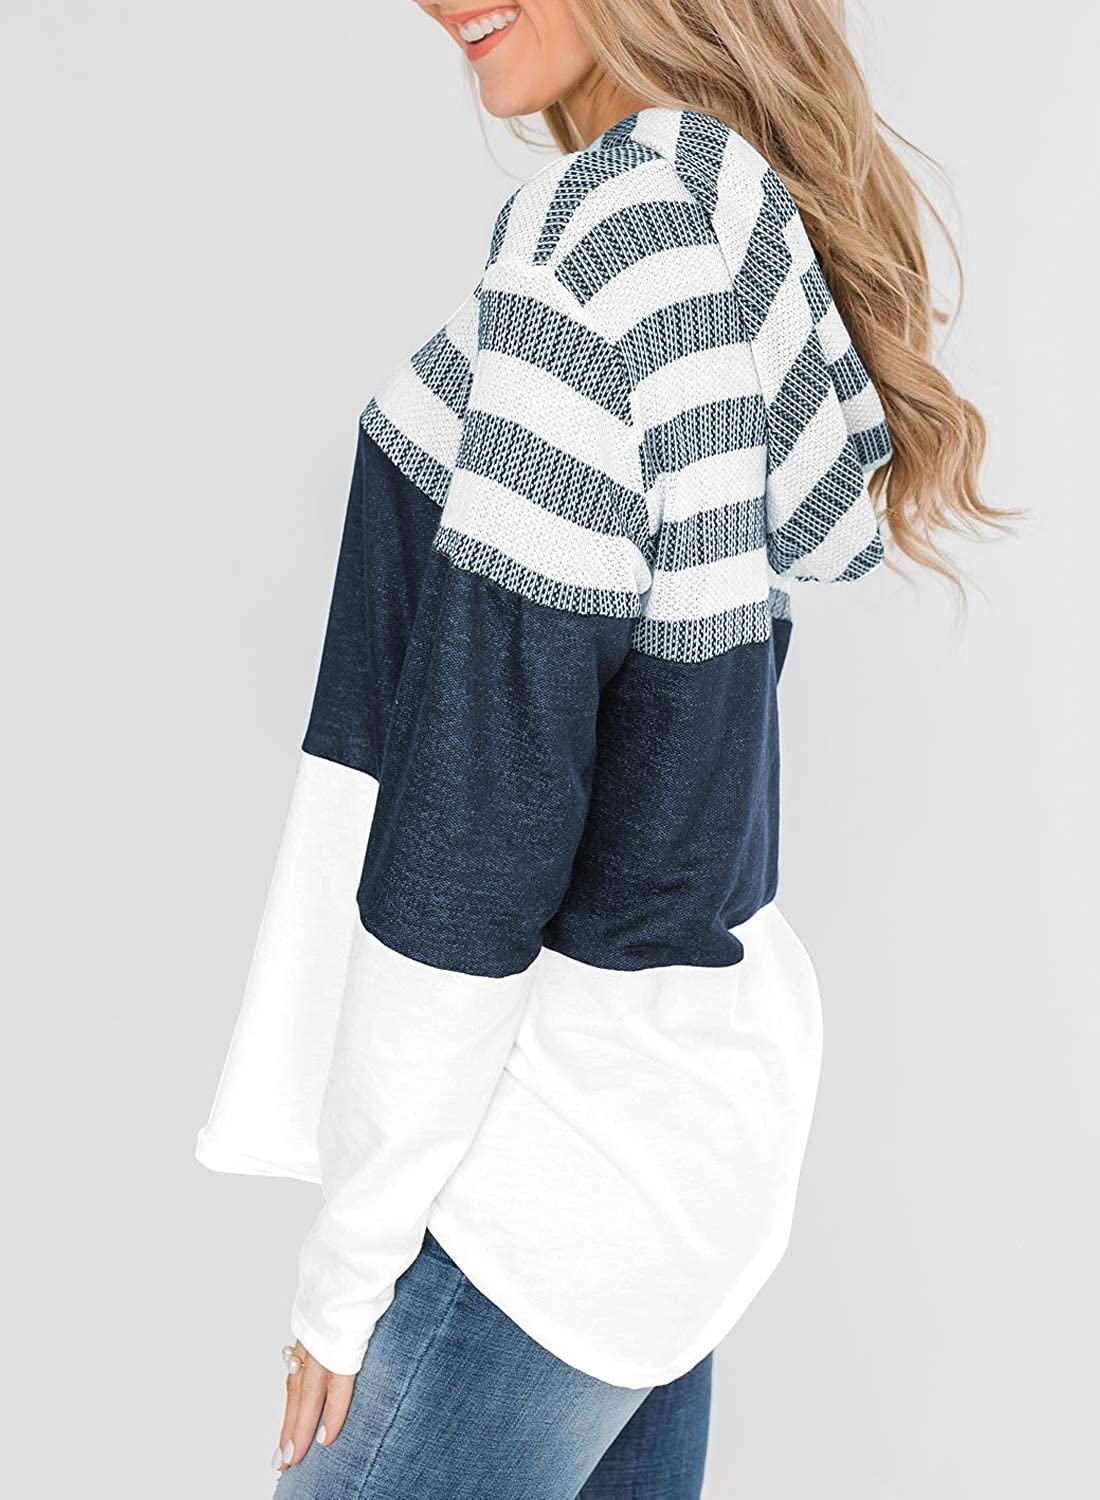 Hawiton Gilet Femme Tricot Cardigan Long Manches Longues Casual Printemps Automne